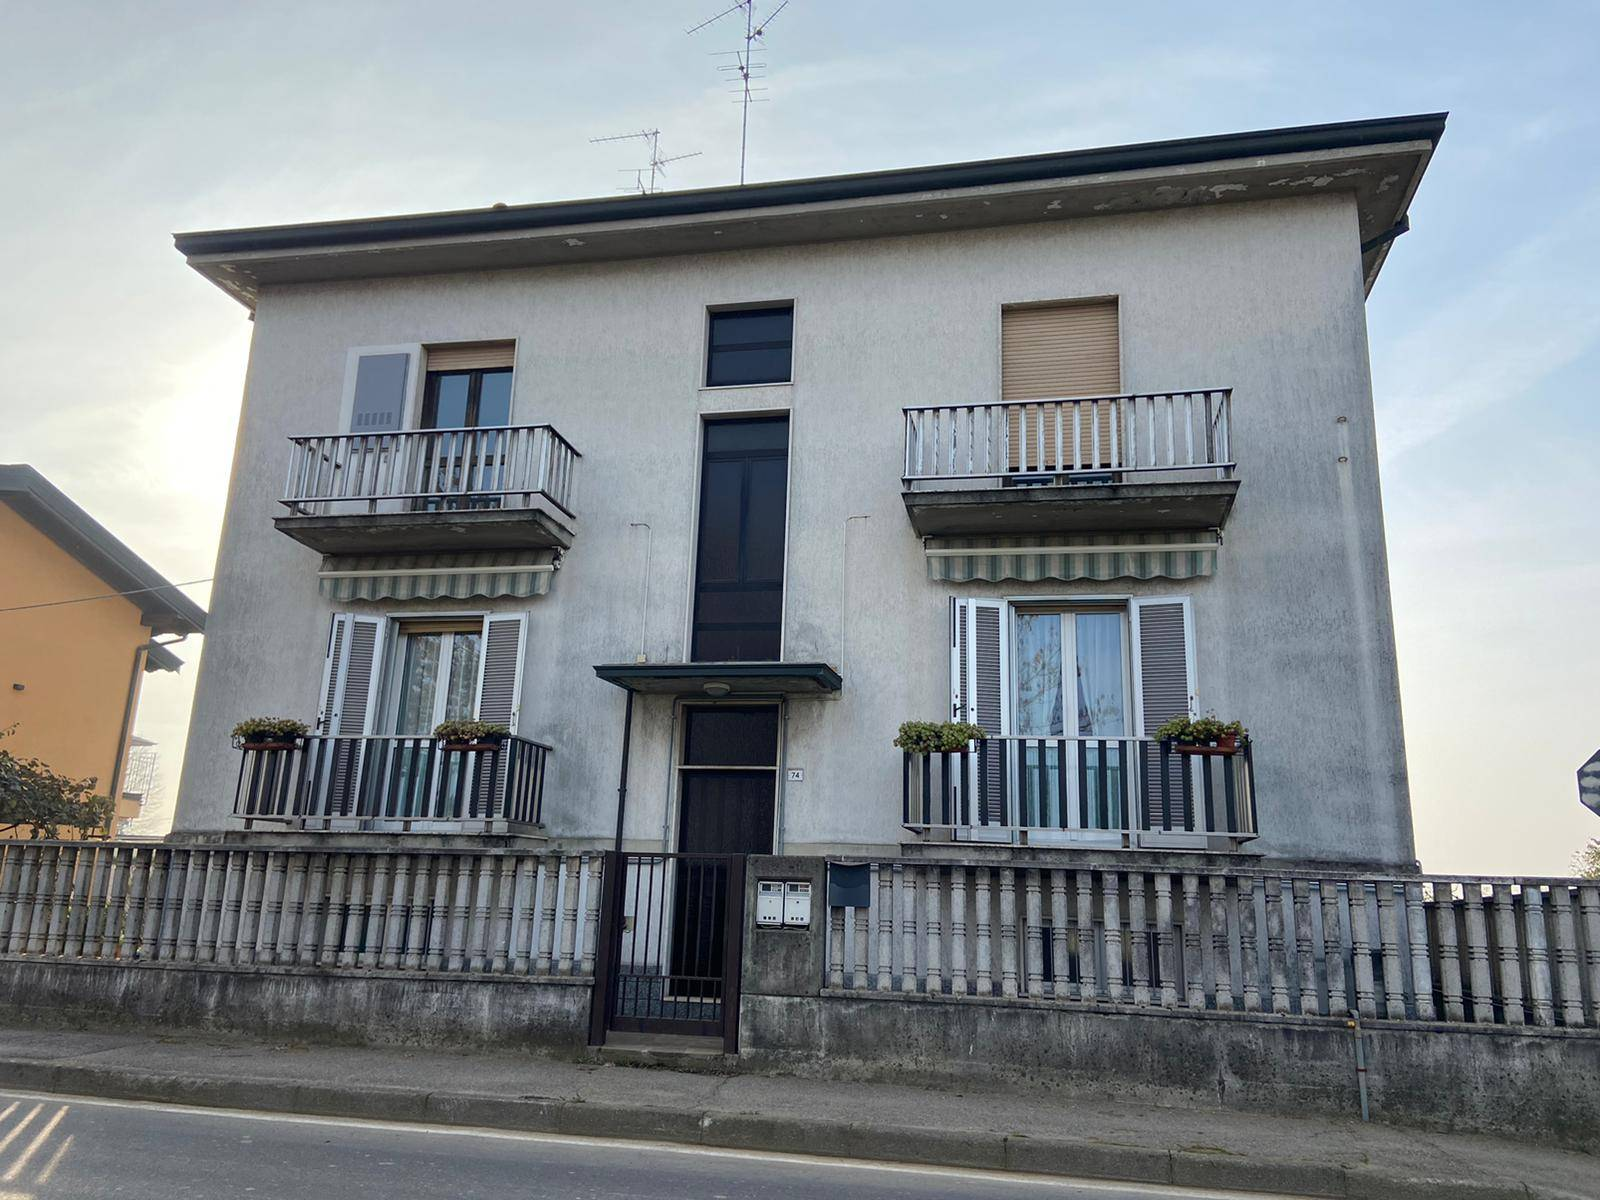 SANT'AGATA, CASSINA DE'PECCHI, Semi detached house for sale of 165 Sq. mt., Be restored, Heating Individual heating system, Energetic class: G, Epi: